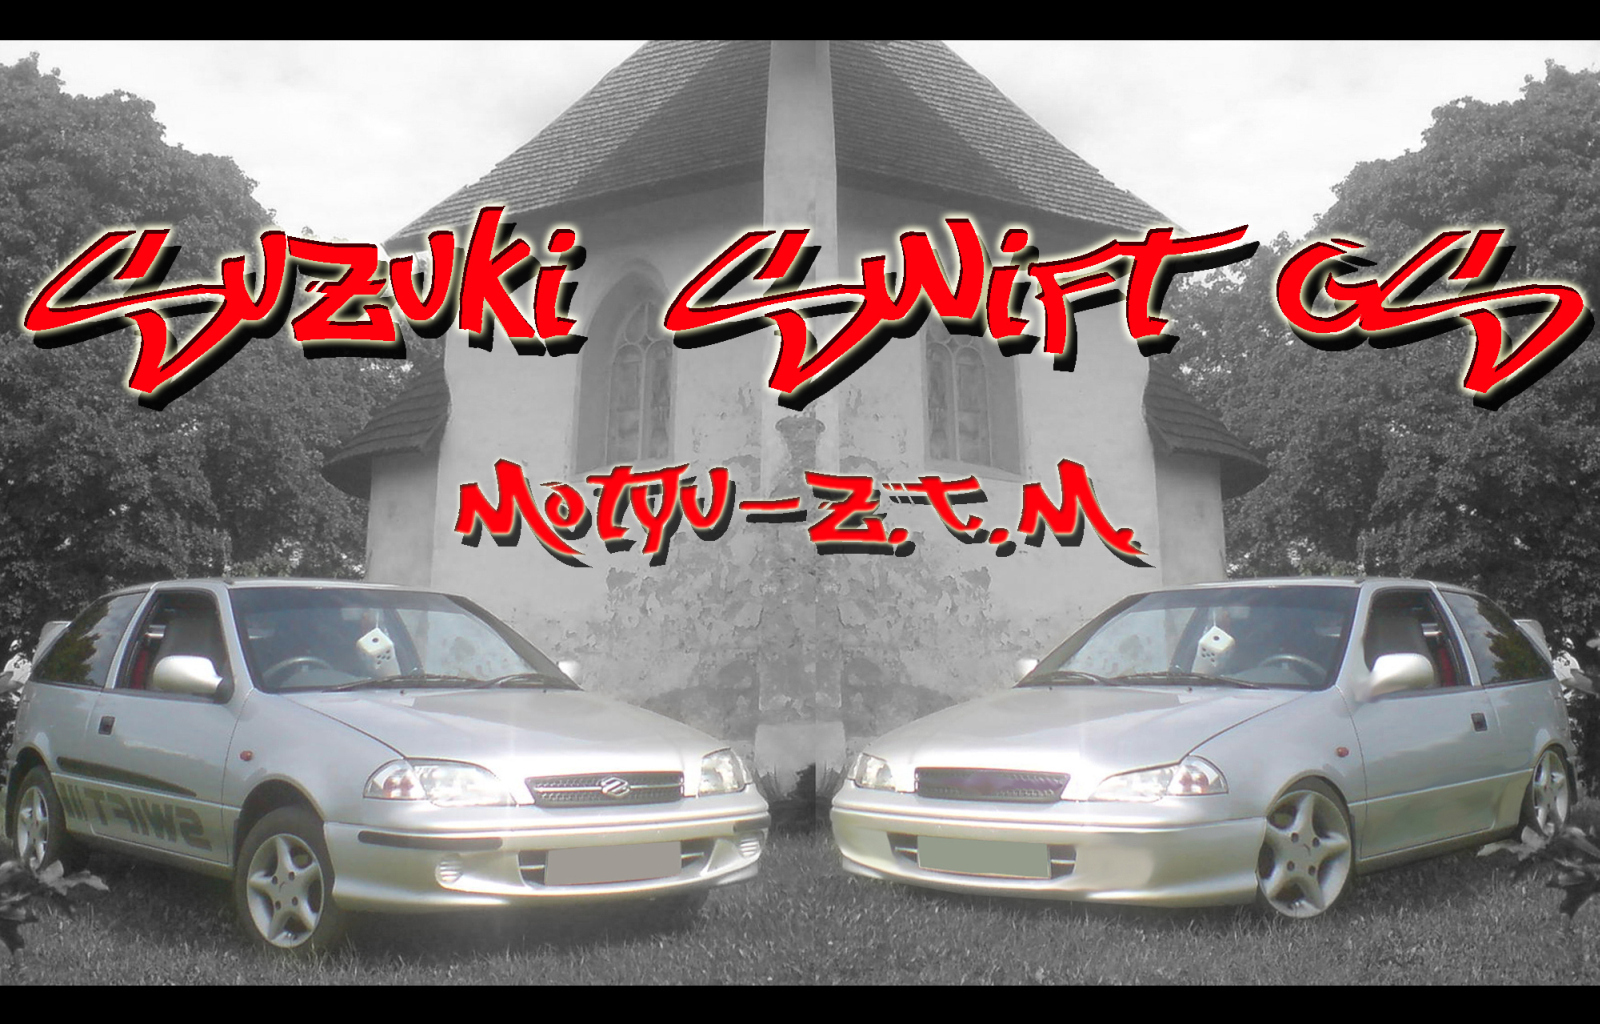 Suzuki Swift GS [Z.T.M]®